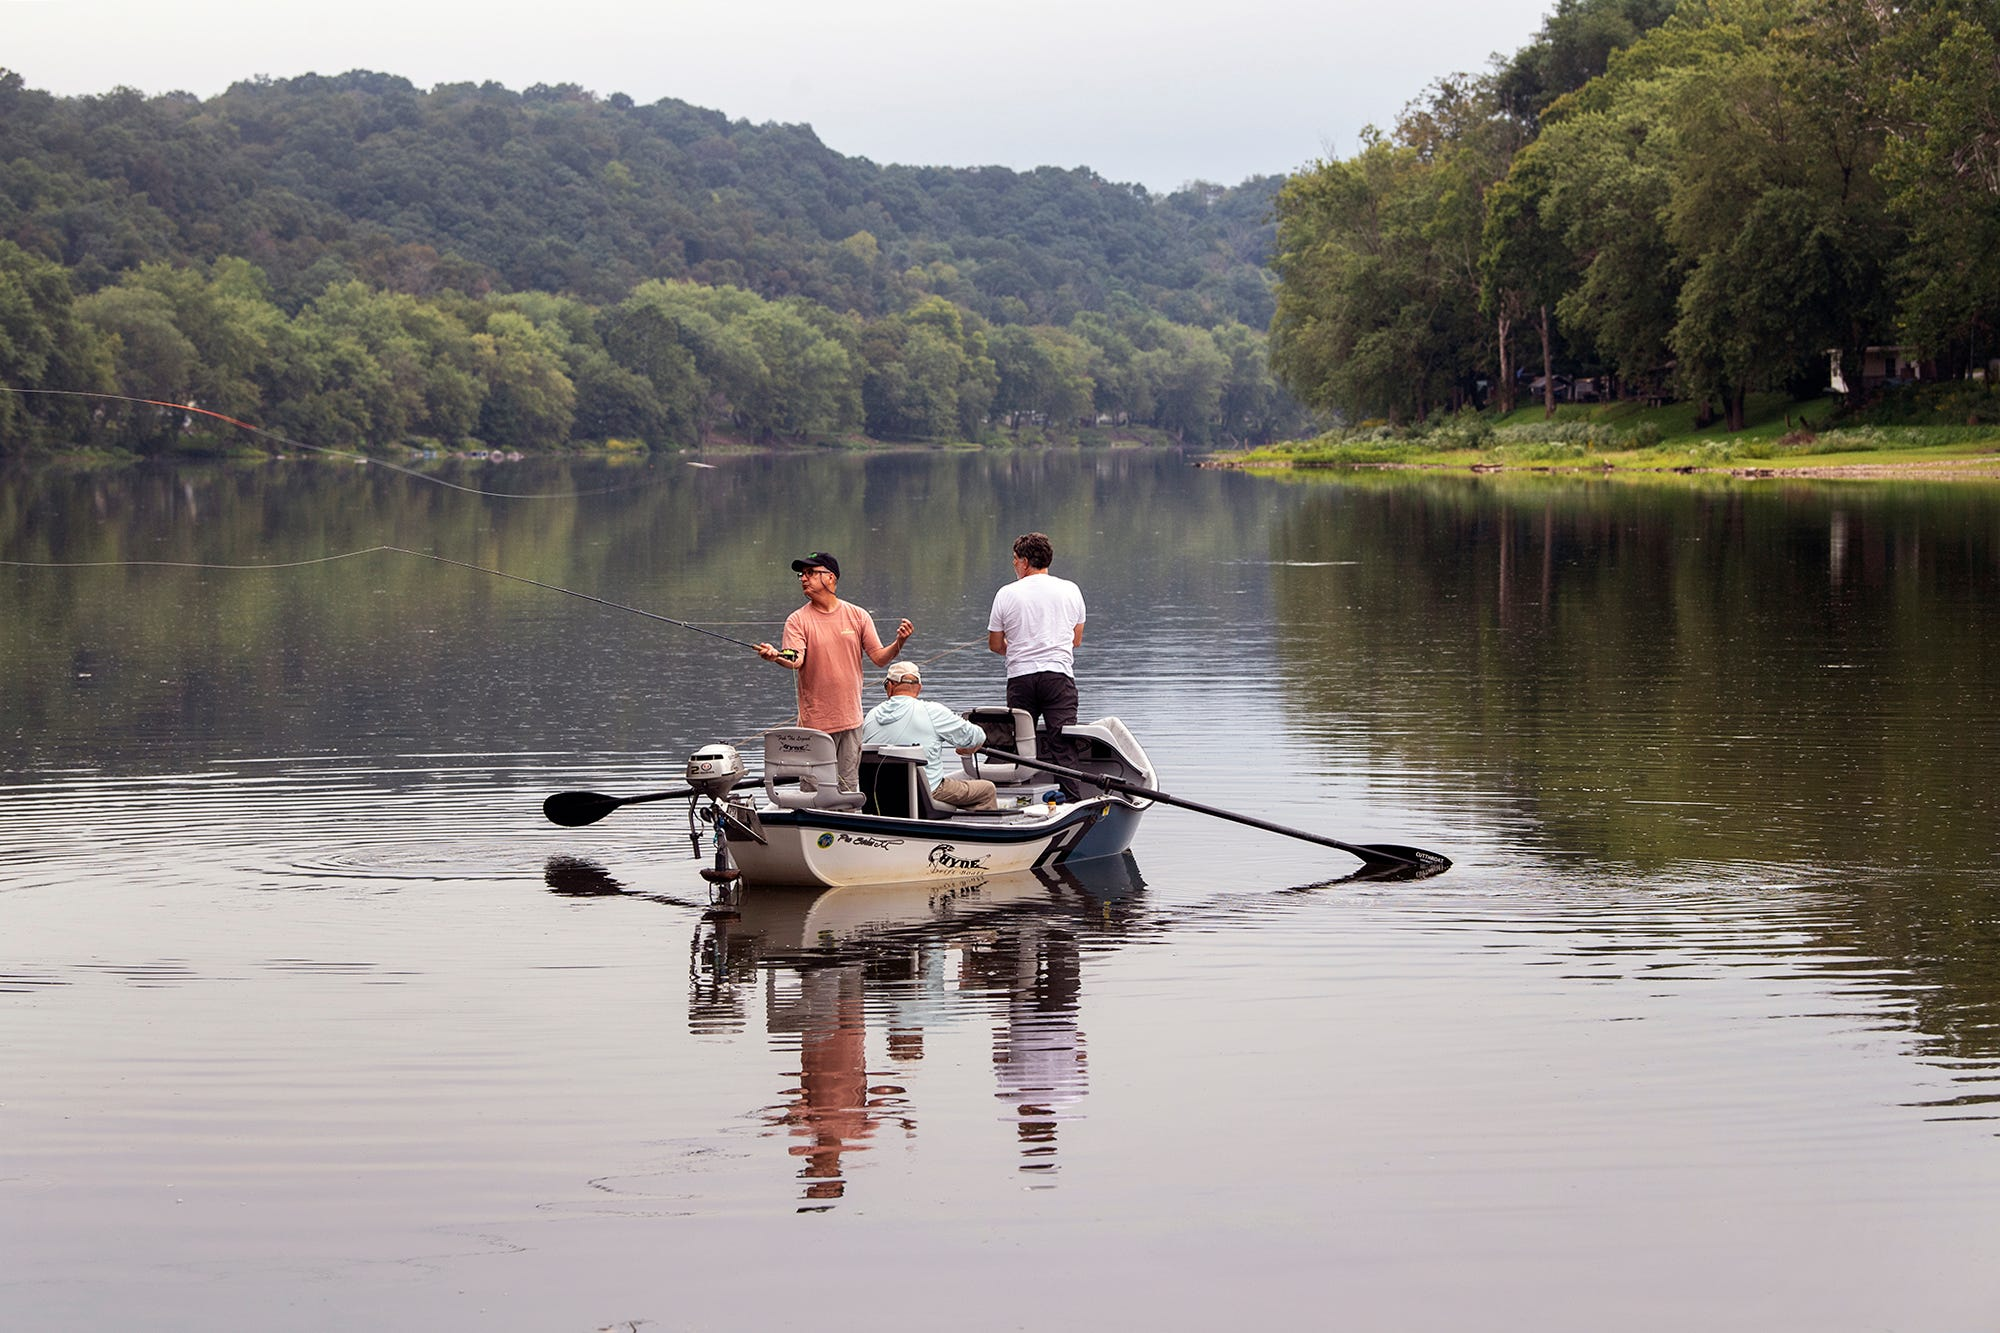 Brian Shumaker rows down the Juniata River near Newport, Pa. while he takes two clients on a fishing trip. The Juniata is a major tributary of the Susquehanna River.